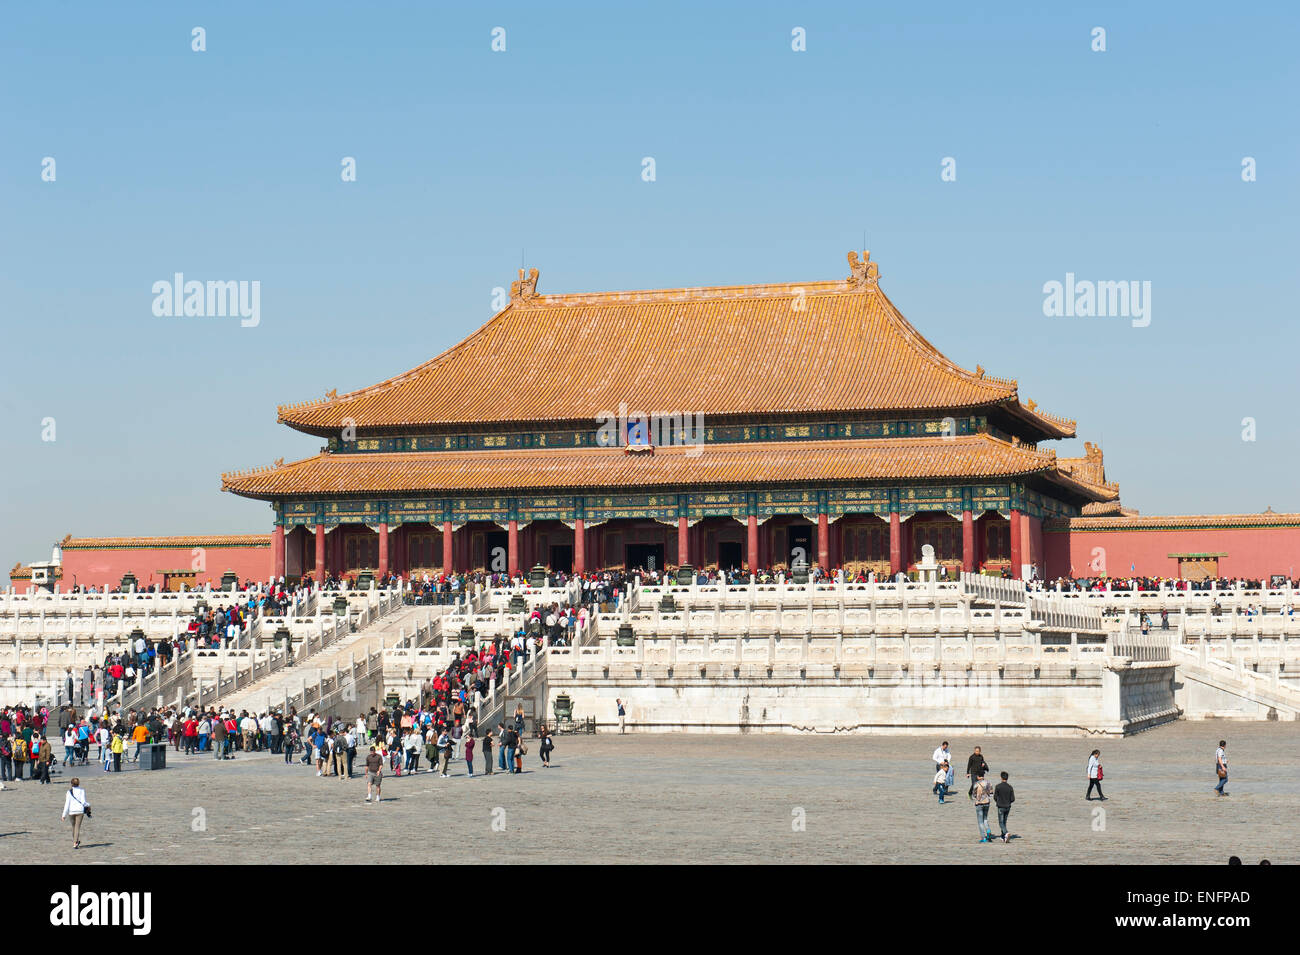 Hall of Supreme Harmony, Forbidden City, Emperor's Palace, Beijing, People's Republic of China - Stock Image